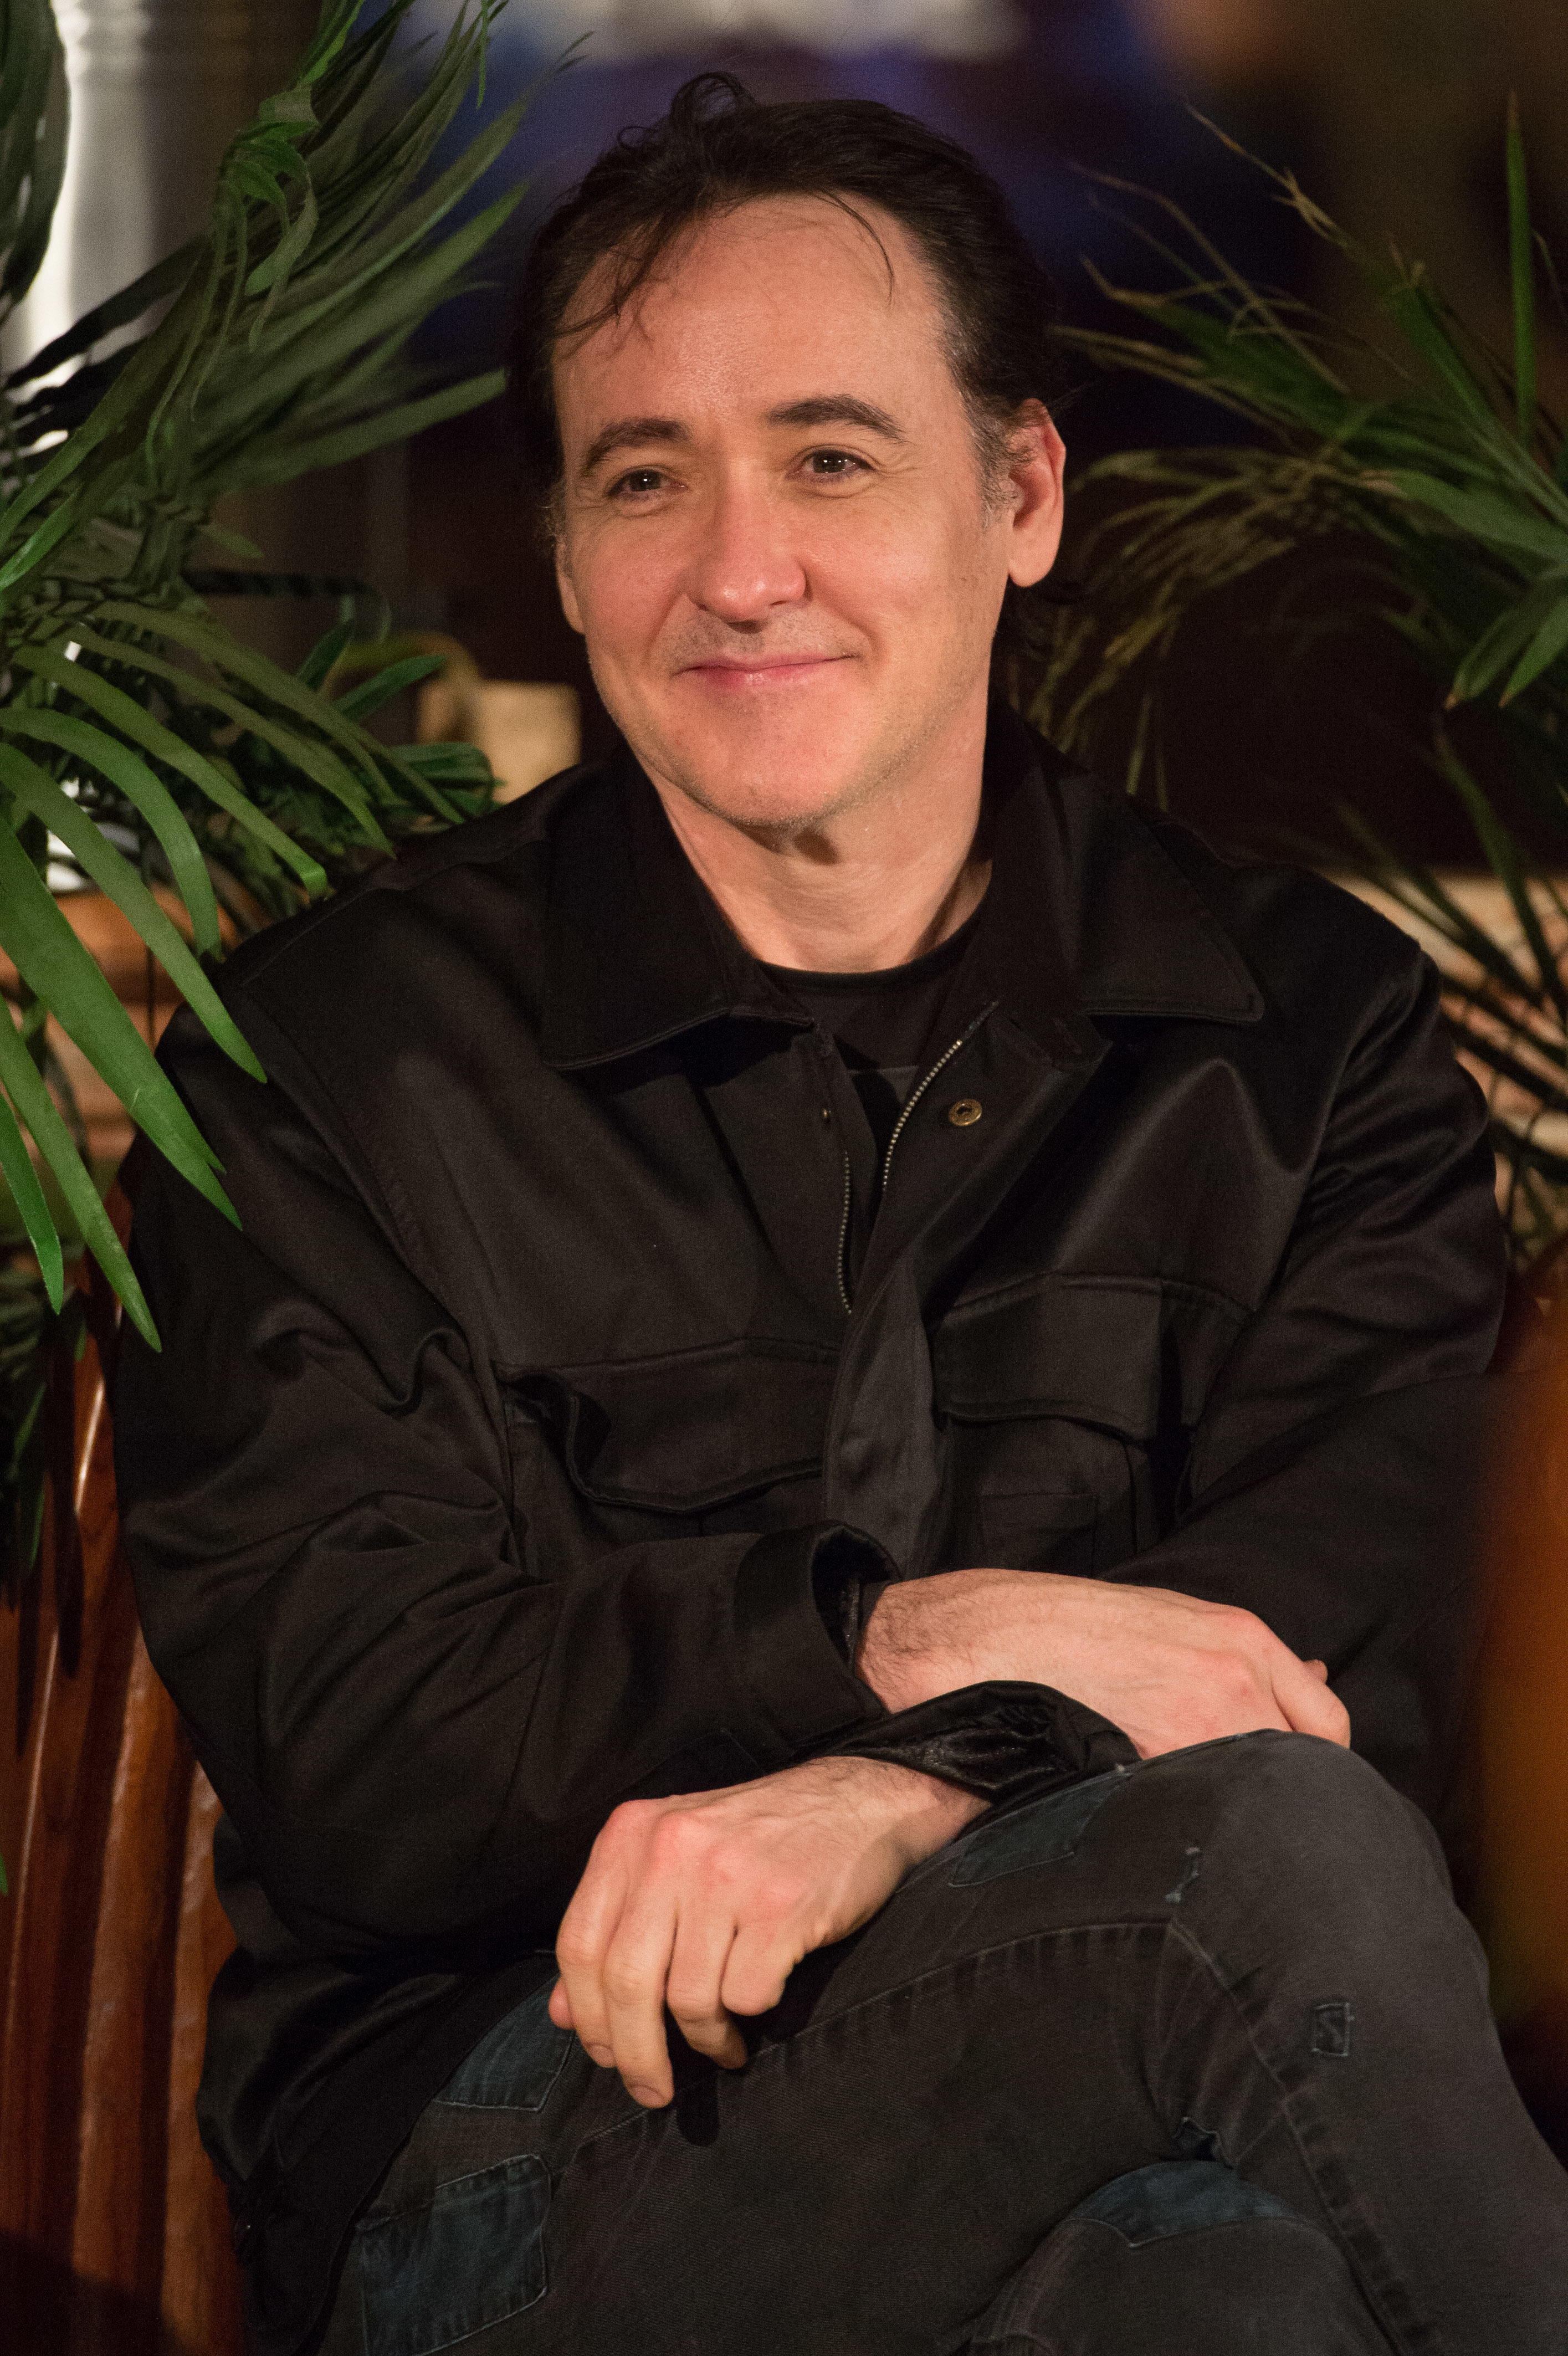 John Cusack appears at African American Speaking Series presents Harry Belafonte in Chicago on Feb. 10, 2017.